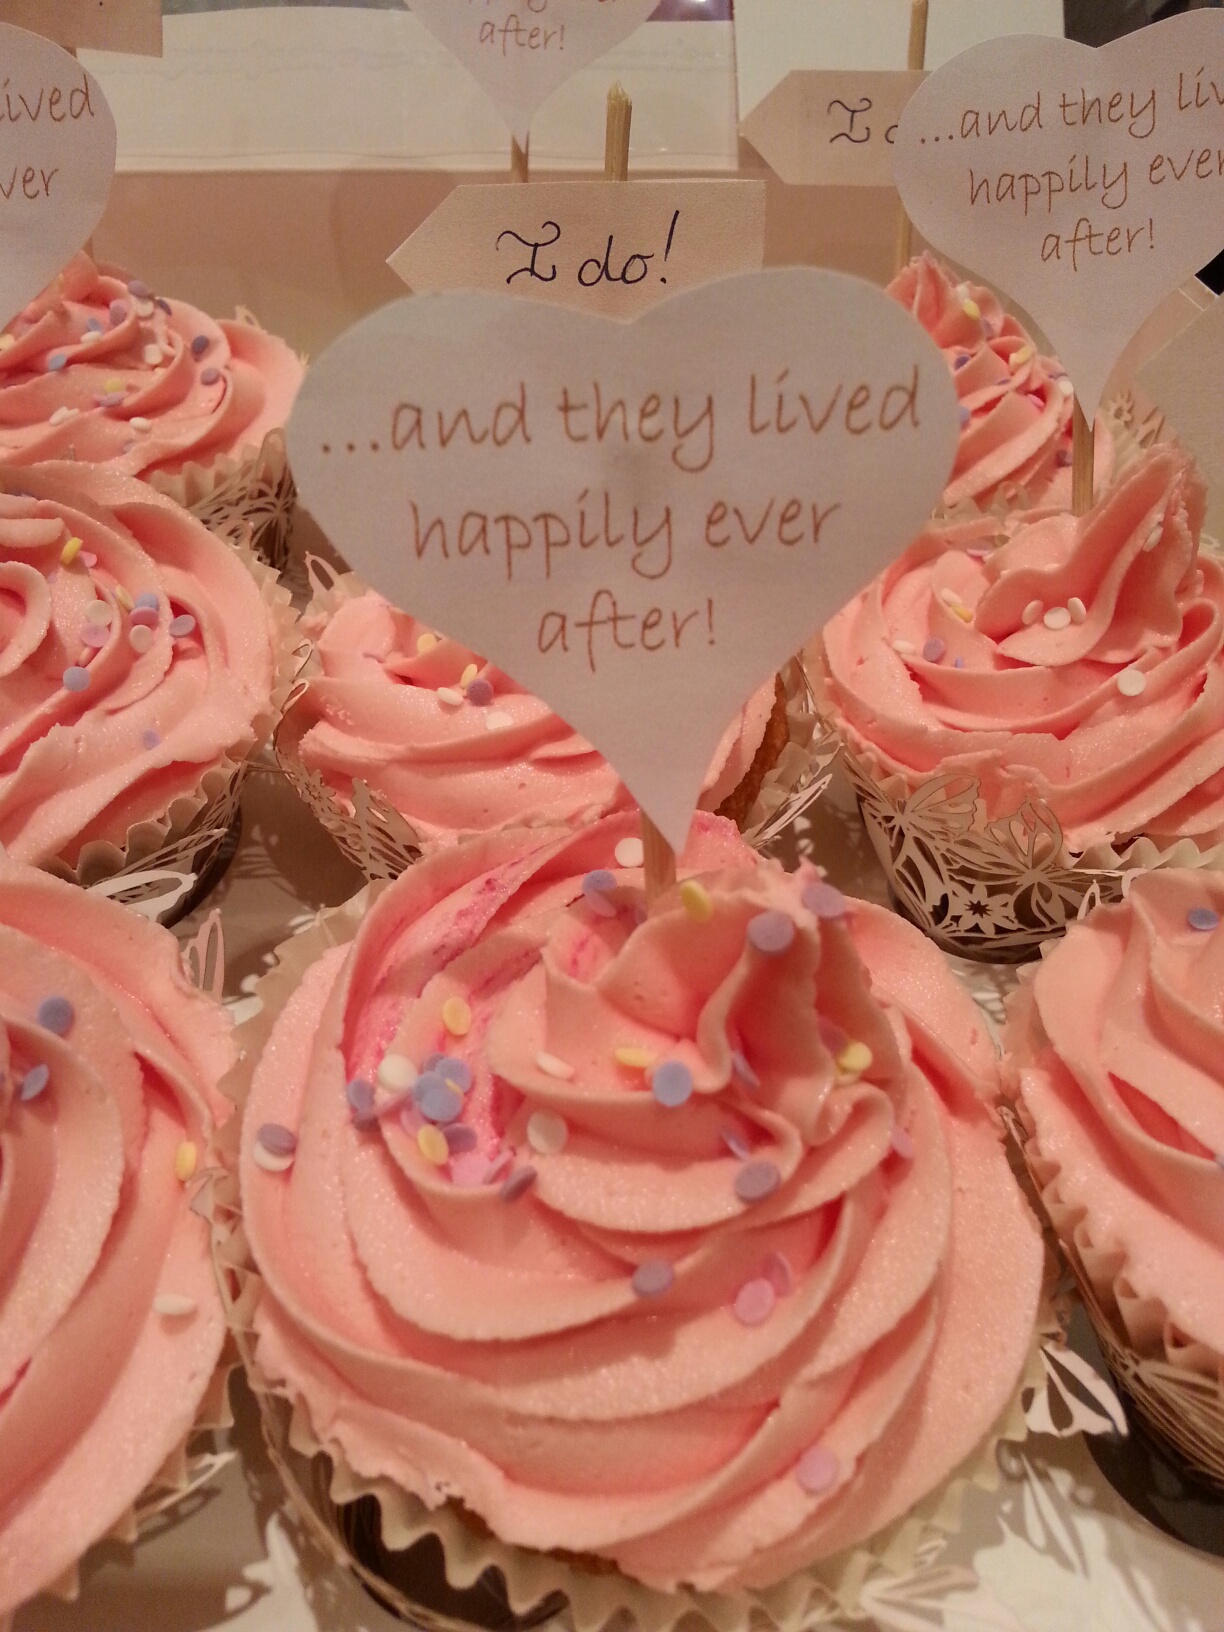 Happily ever aftercupcakes